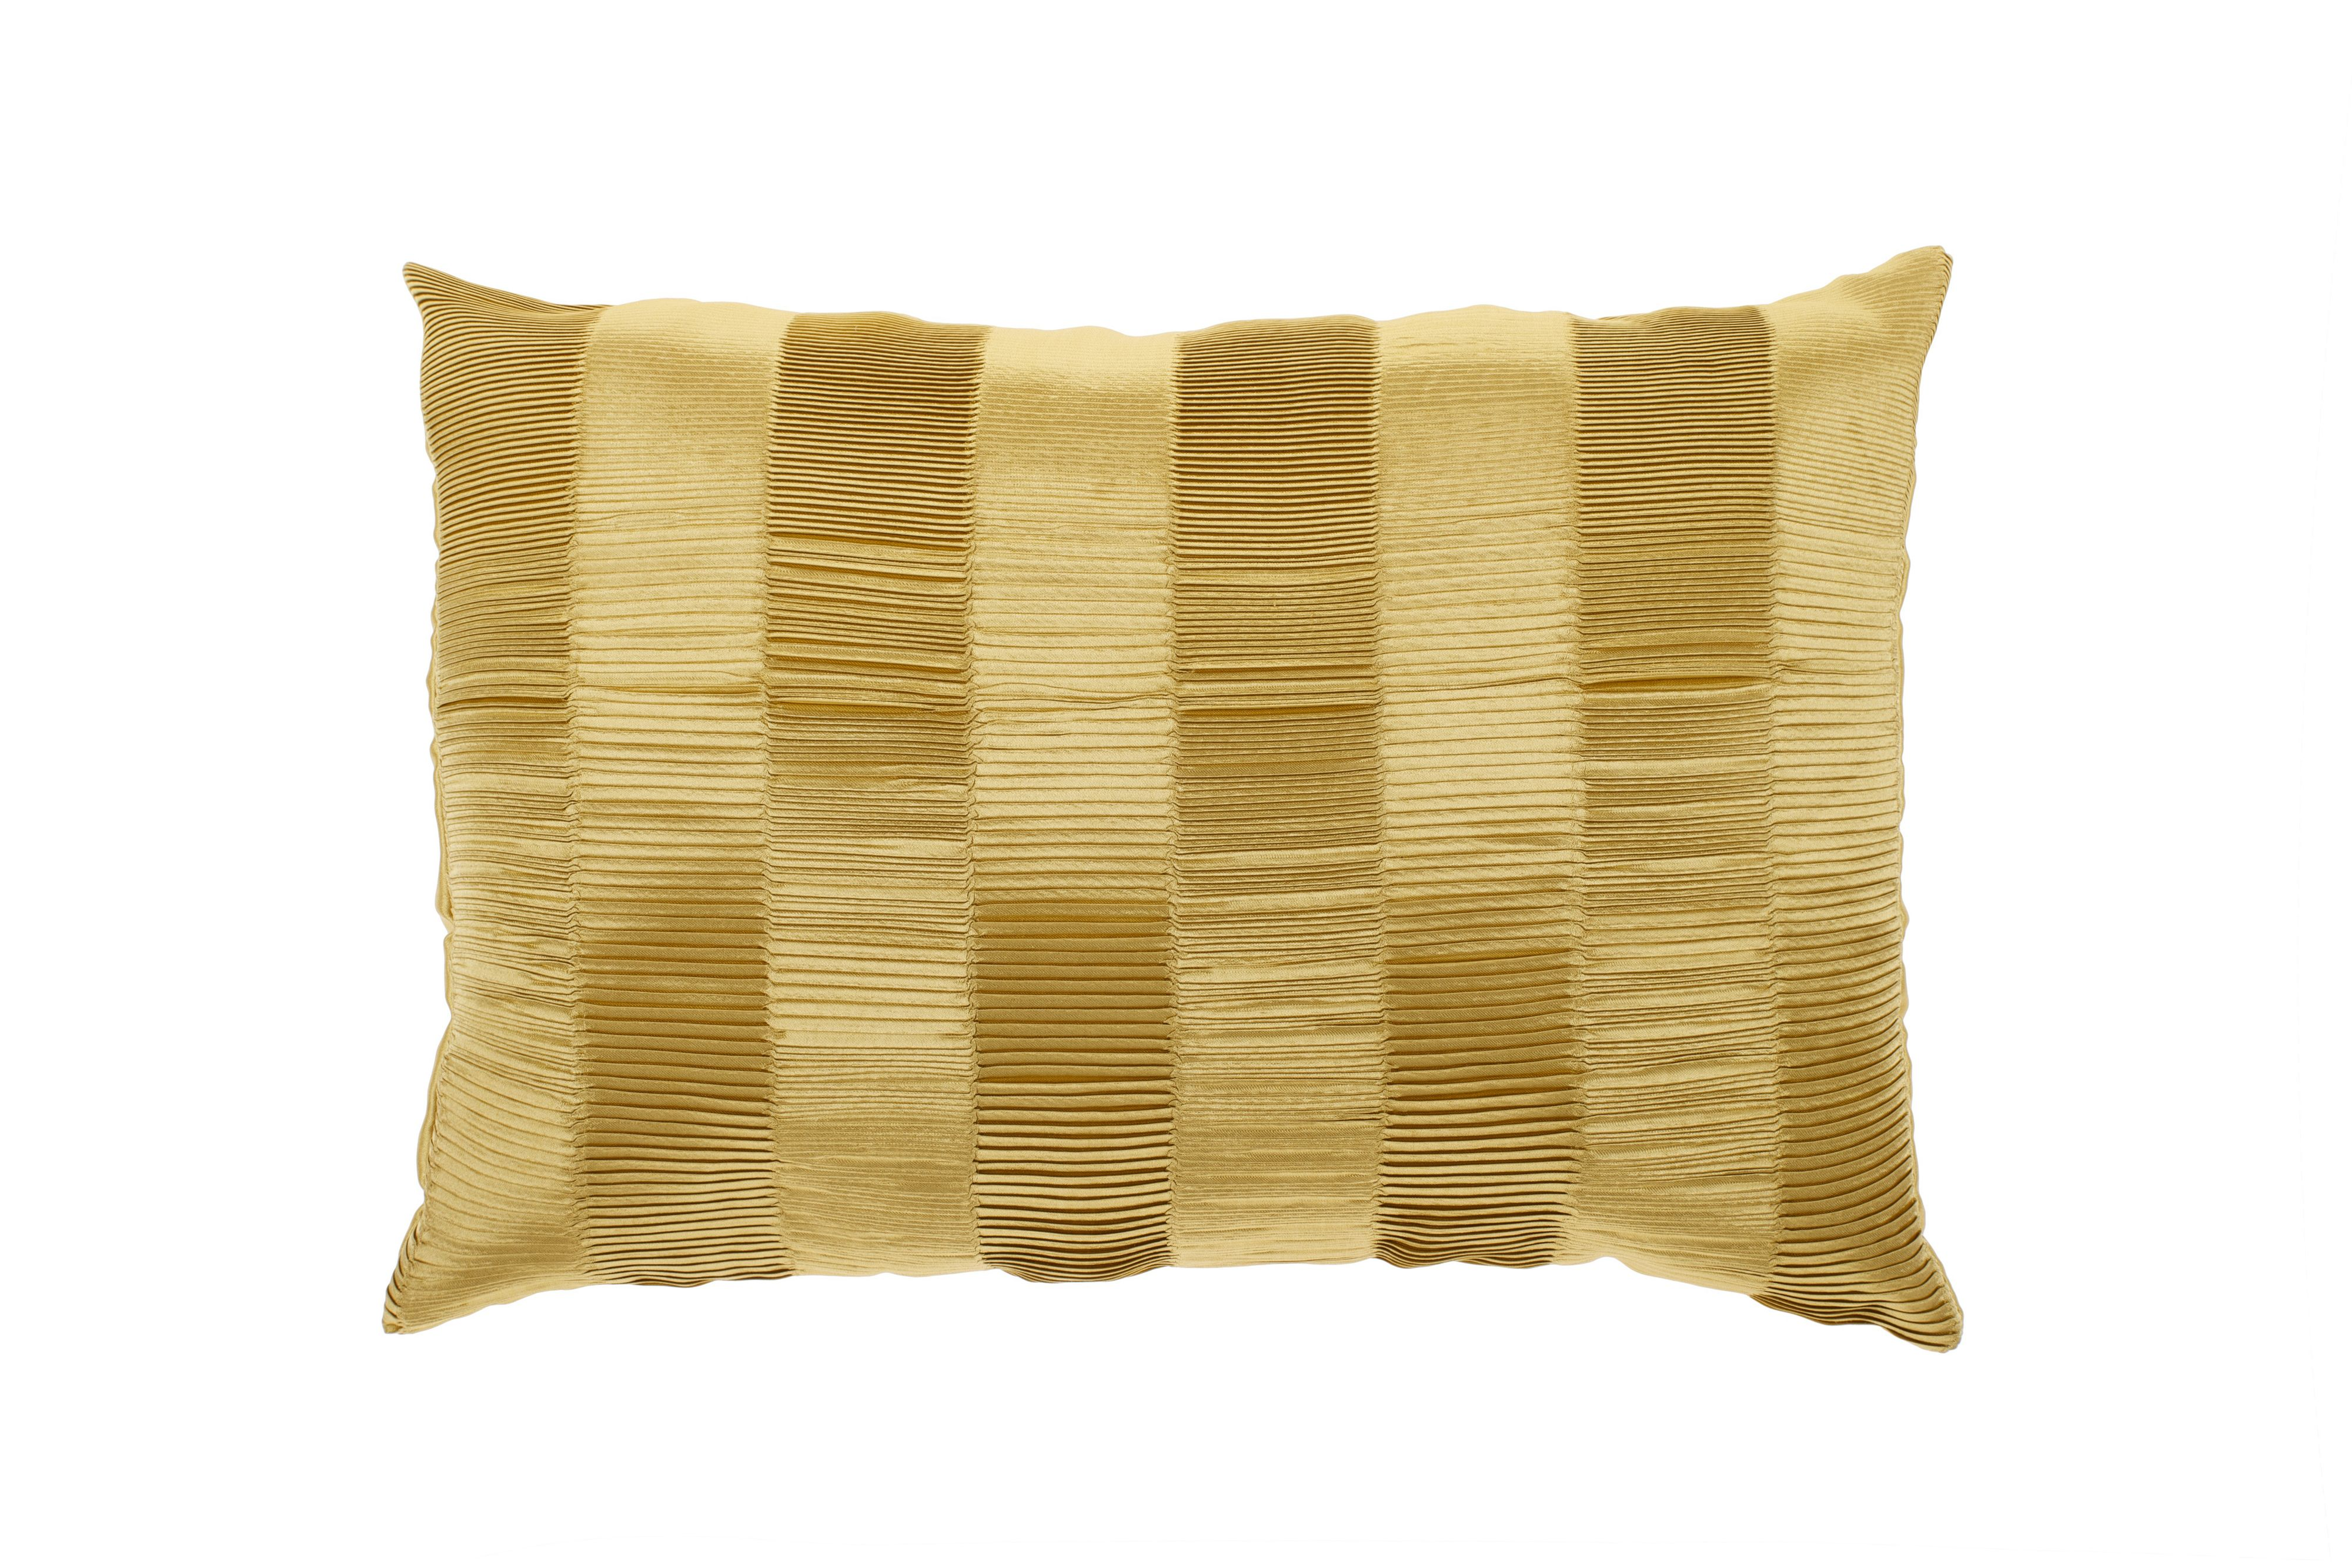 Heat pleat cushion in chartreuse